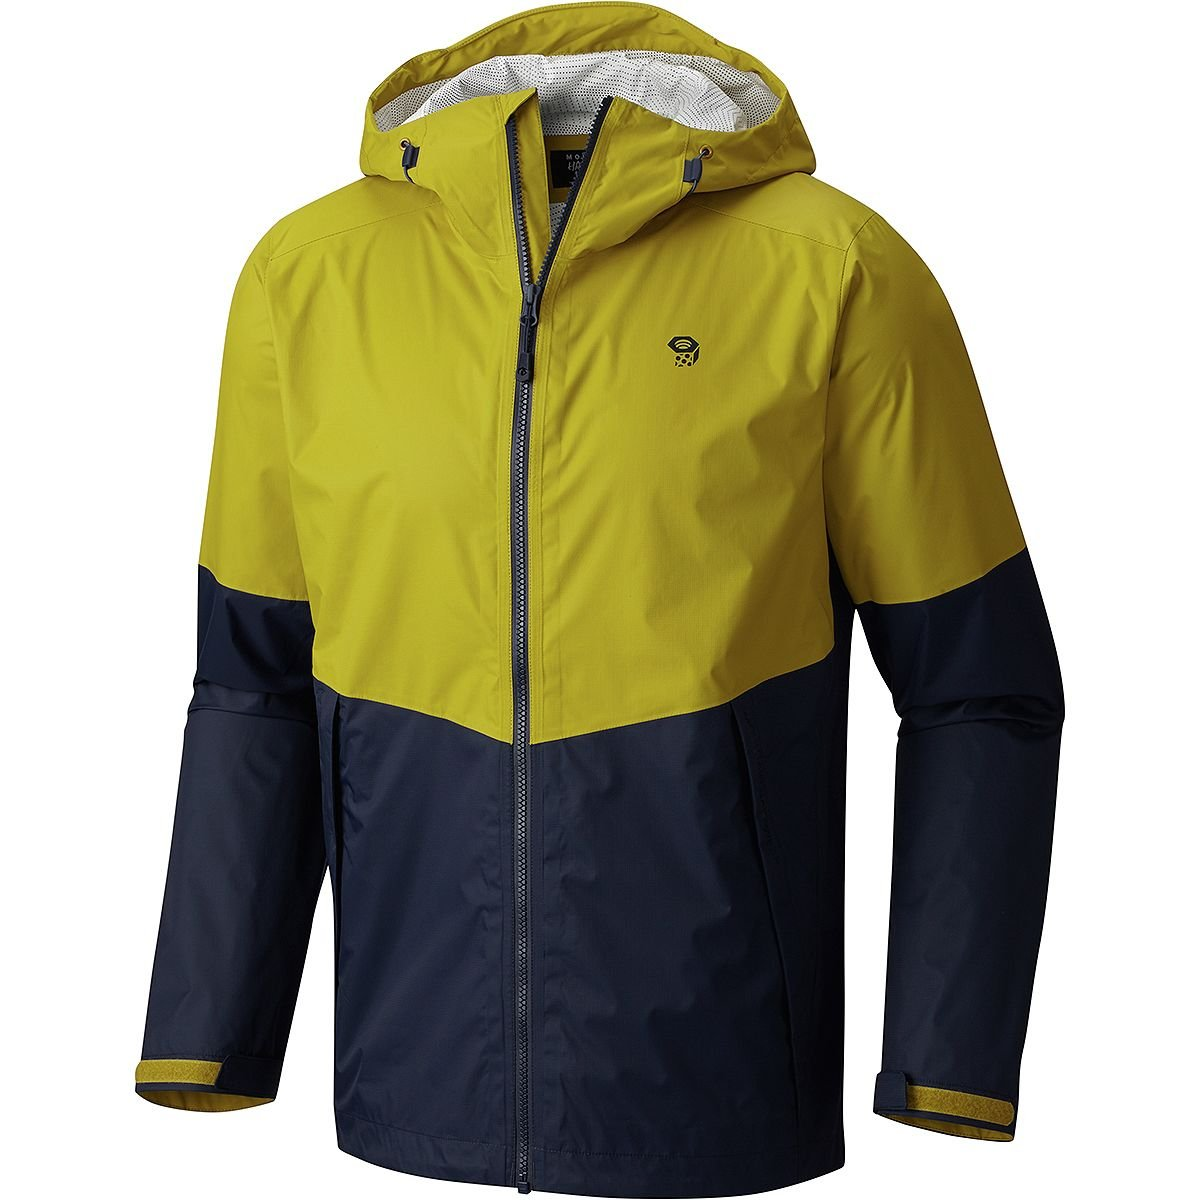 マウンテンハードウェア指数Jacket – Men 's B079H19KZT XX-Large|Dark Citron Dark Citron XX-Large